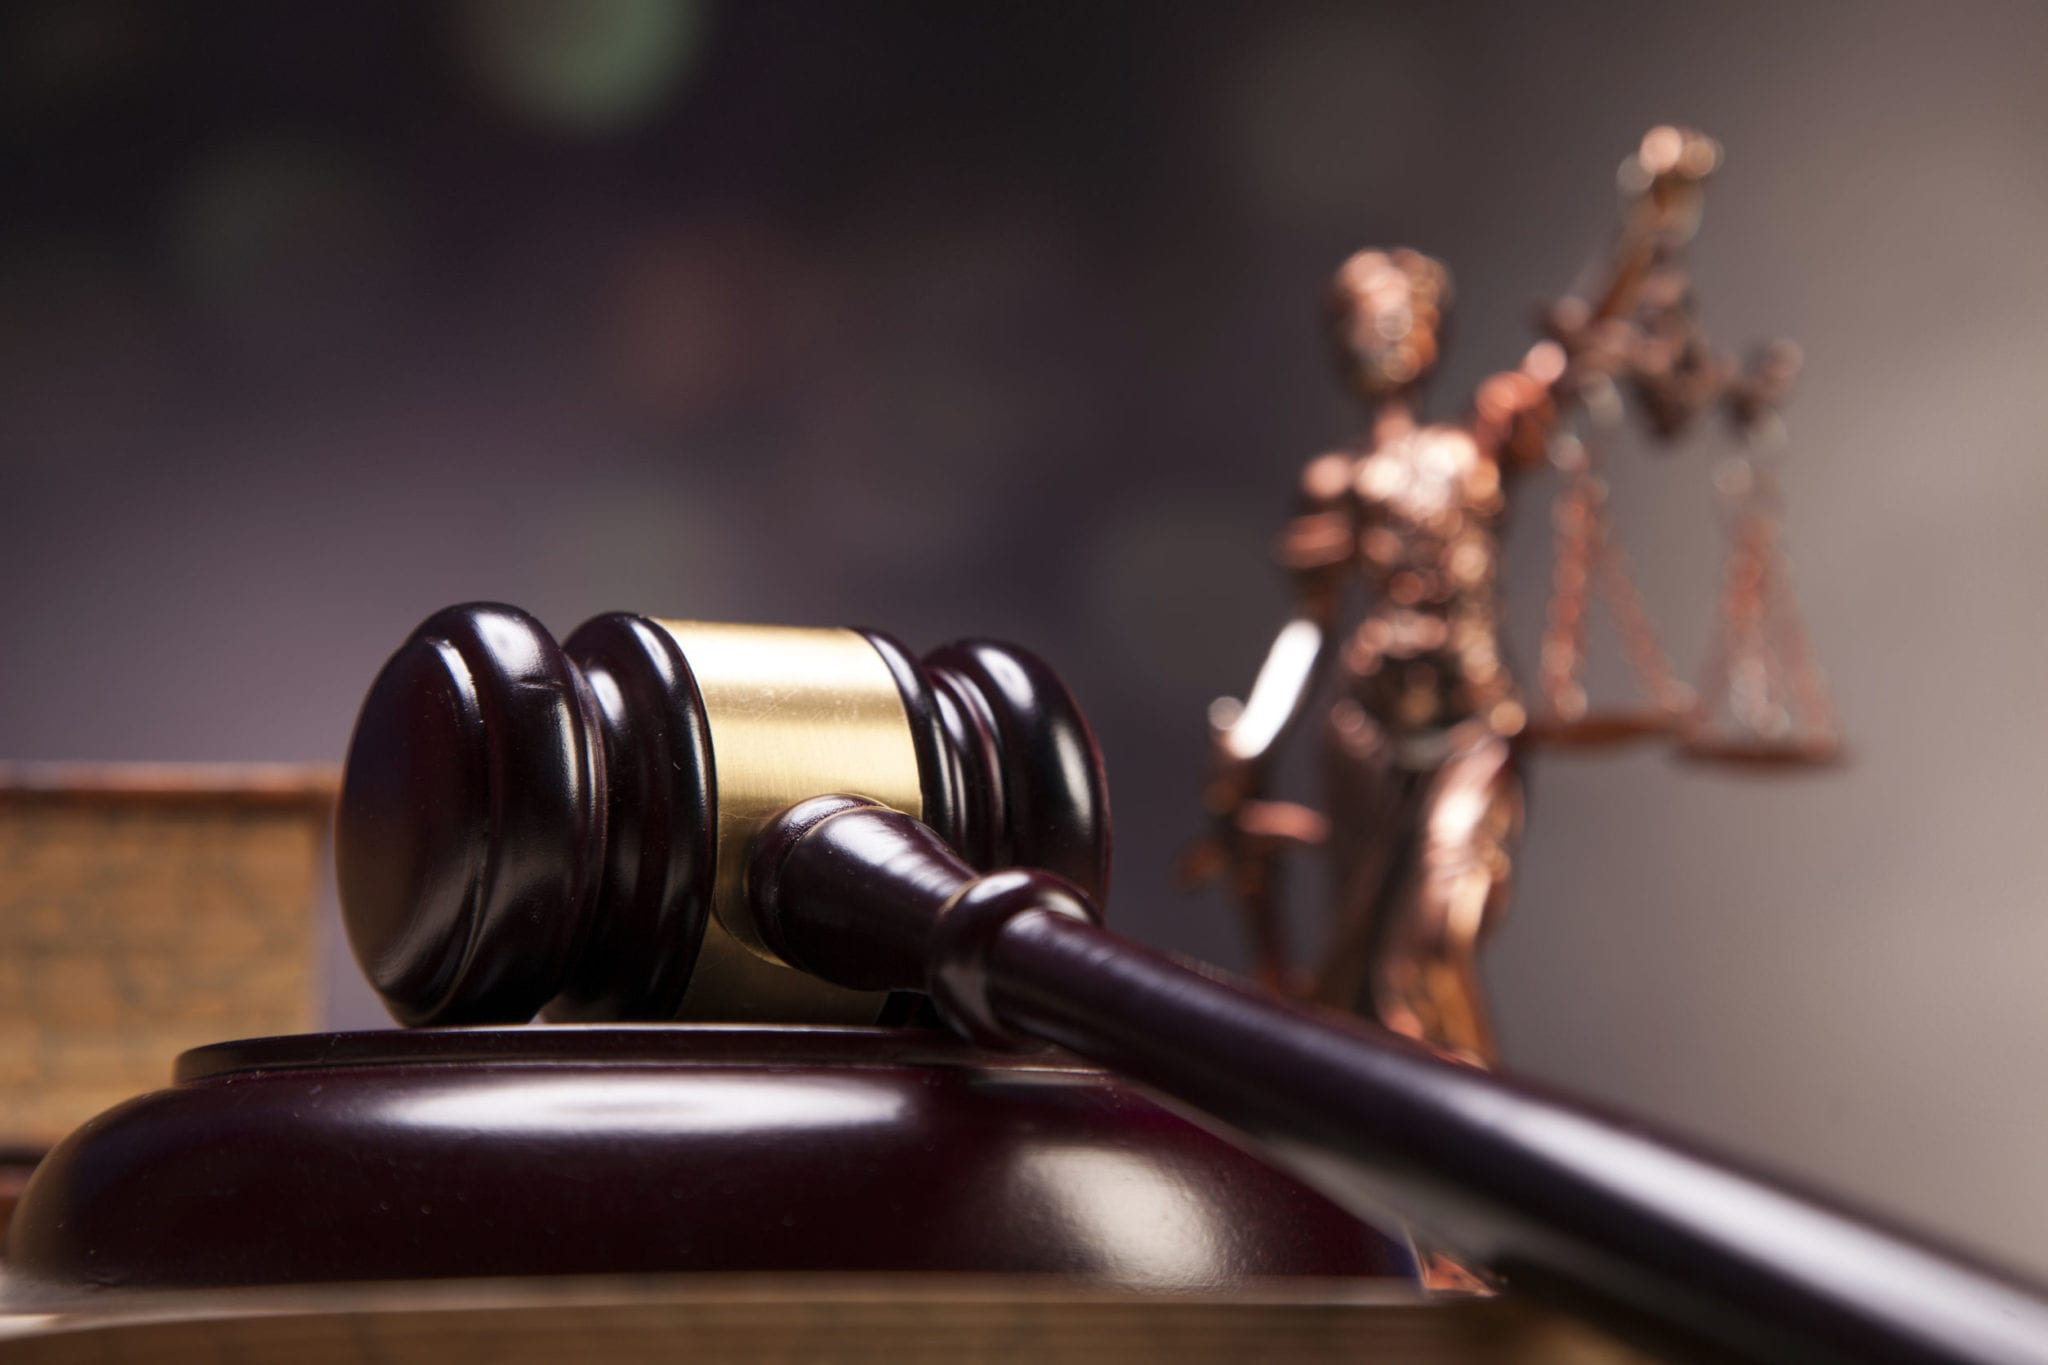 Penalties for Retaliation and Obstruction